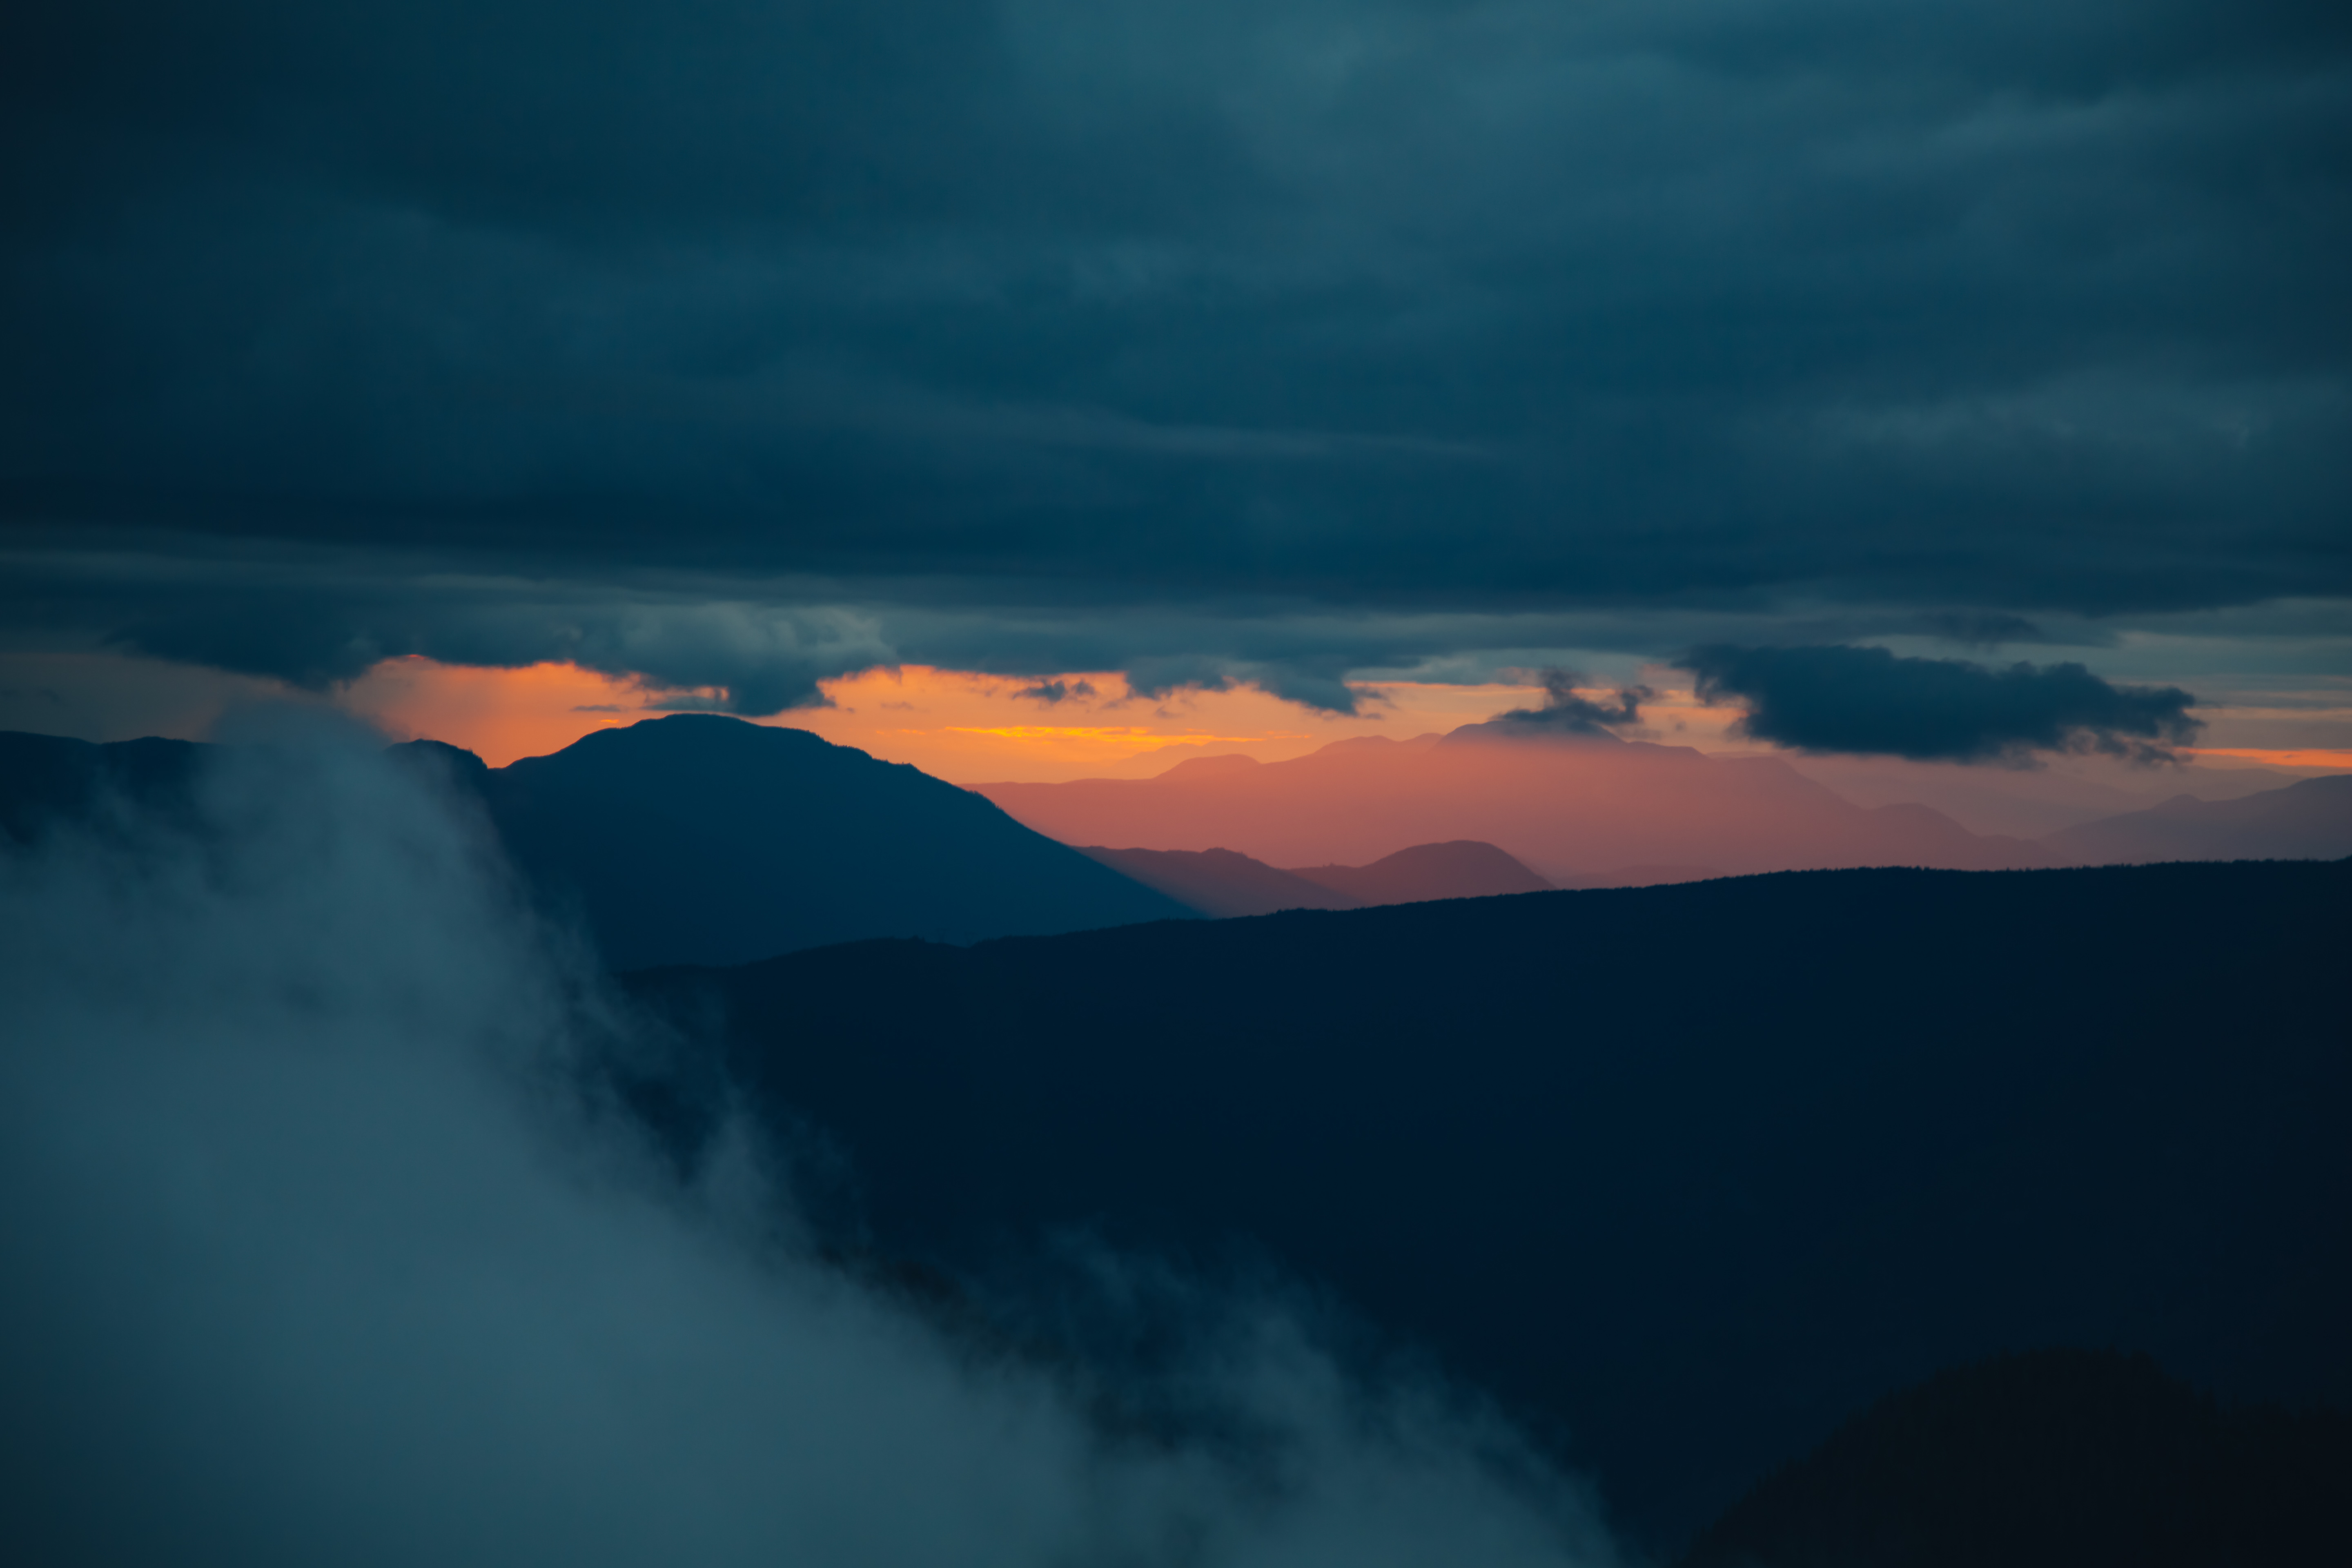 Sunset over the mountains, a dark and moody landscape.